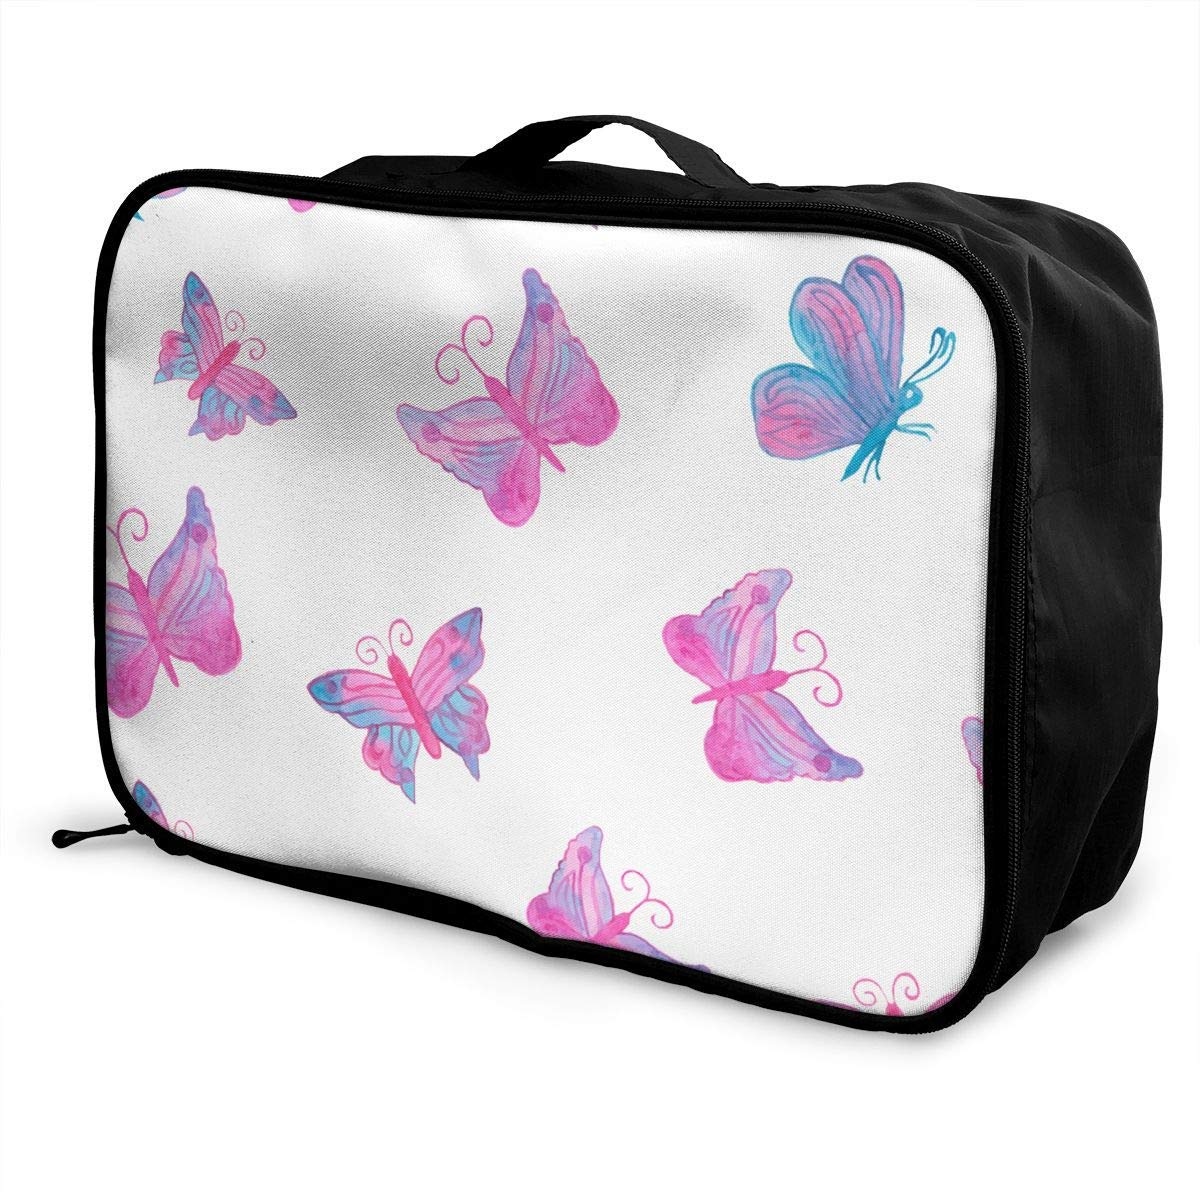 JTRVW Luggage Bags for Travel Lightweight Large Capacity Portable Duffel Bag for Men /& Women Pink Butterflies Travel Duffel Bag Backpack